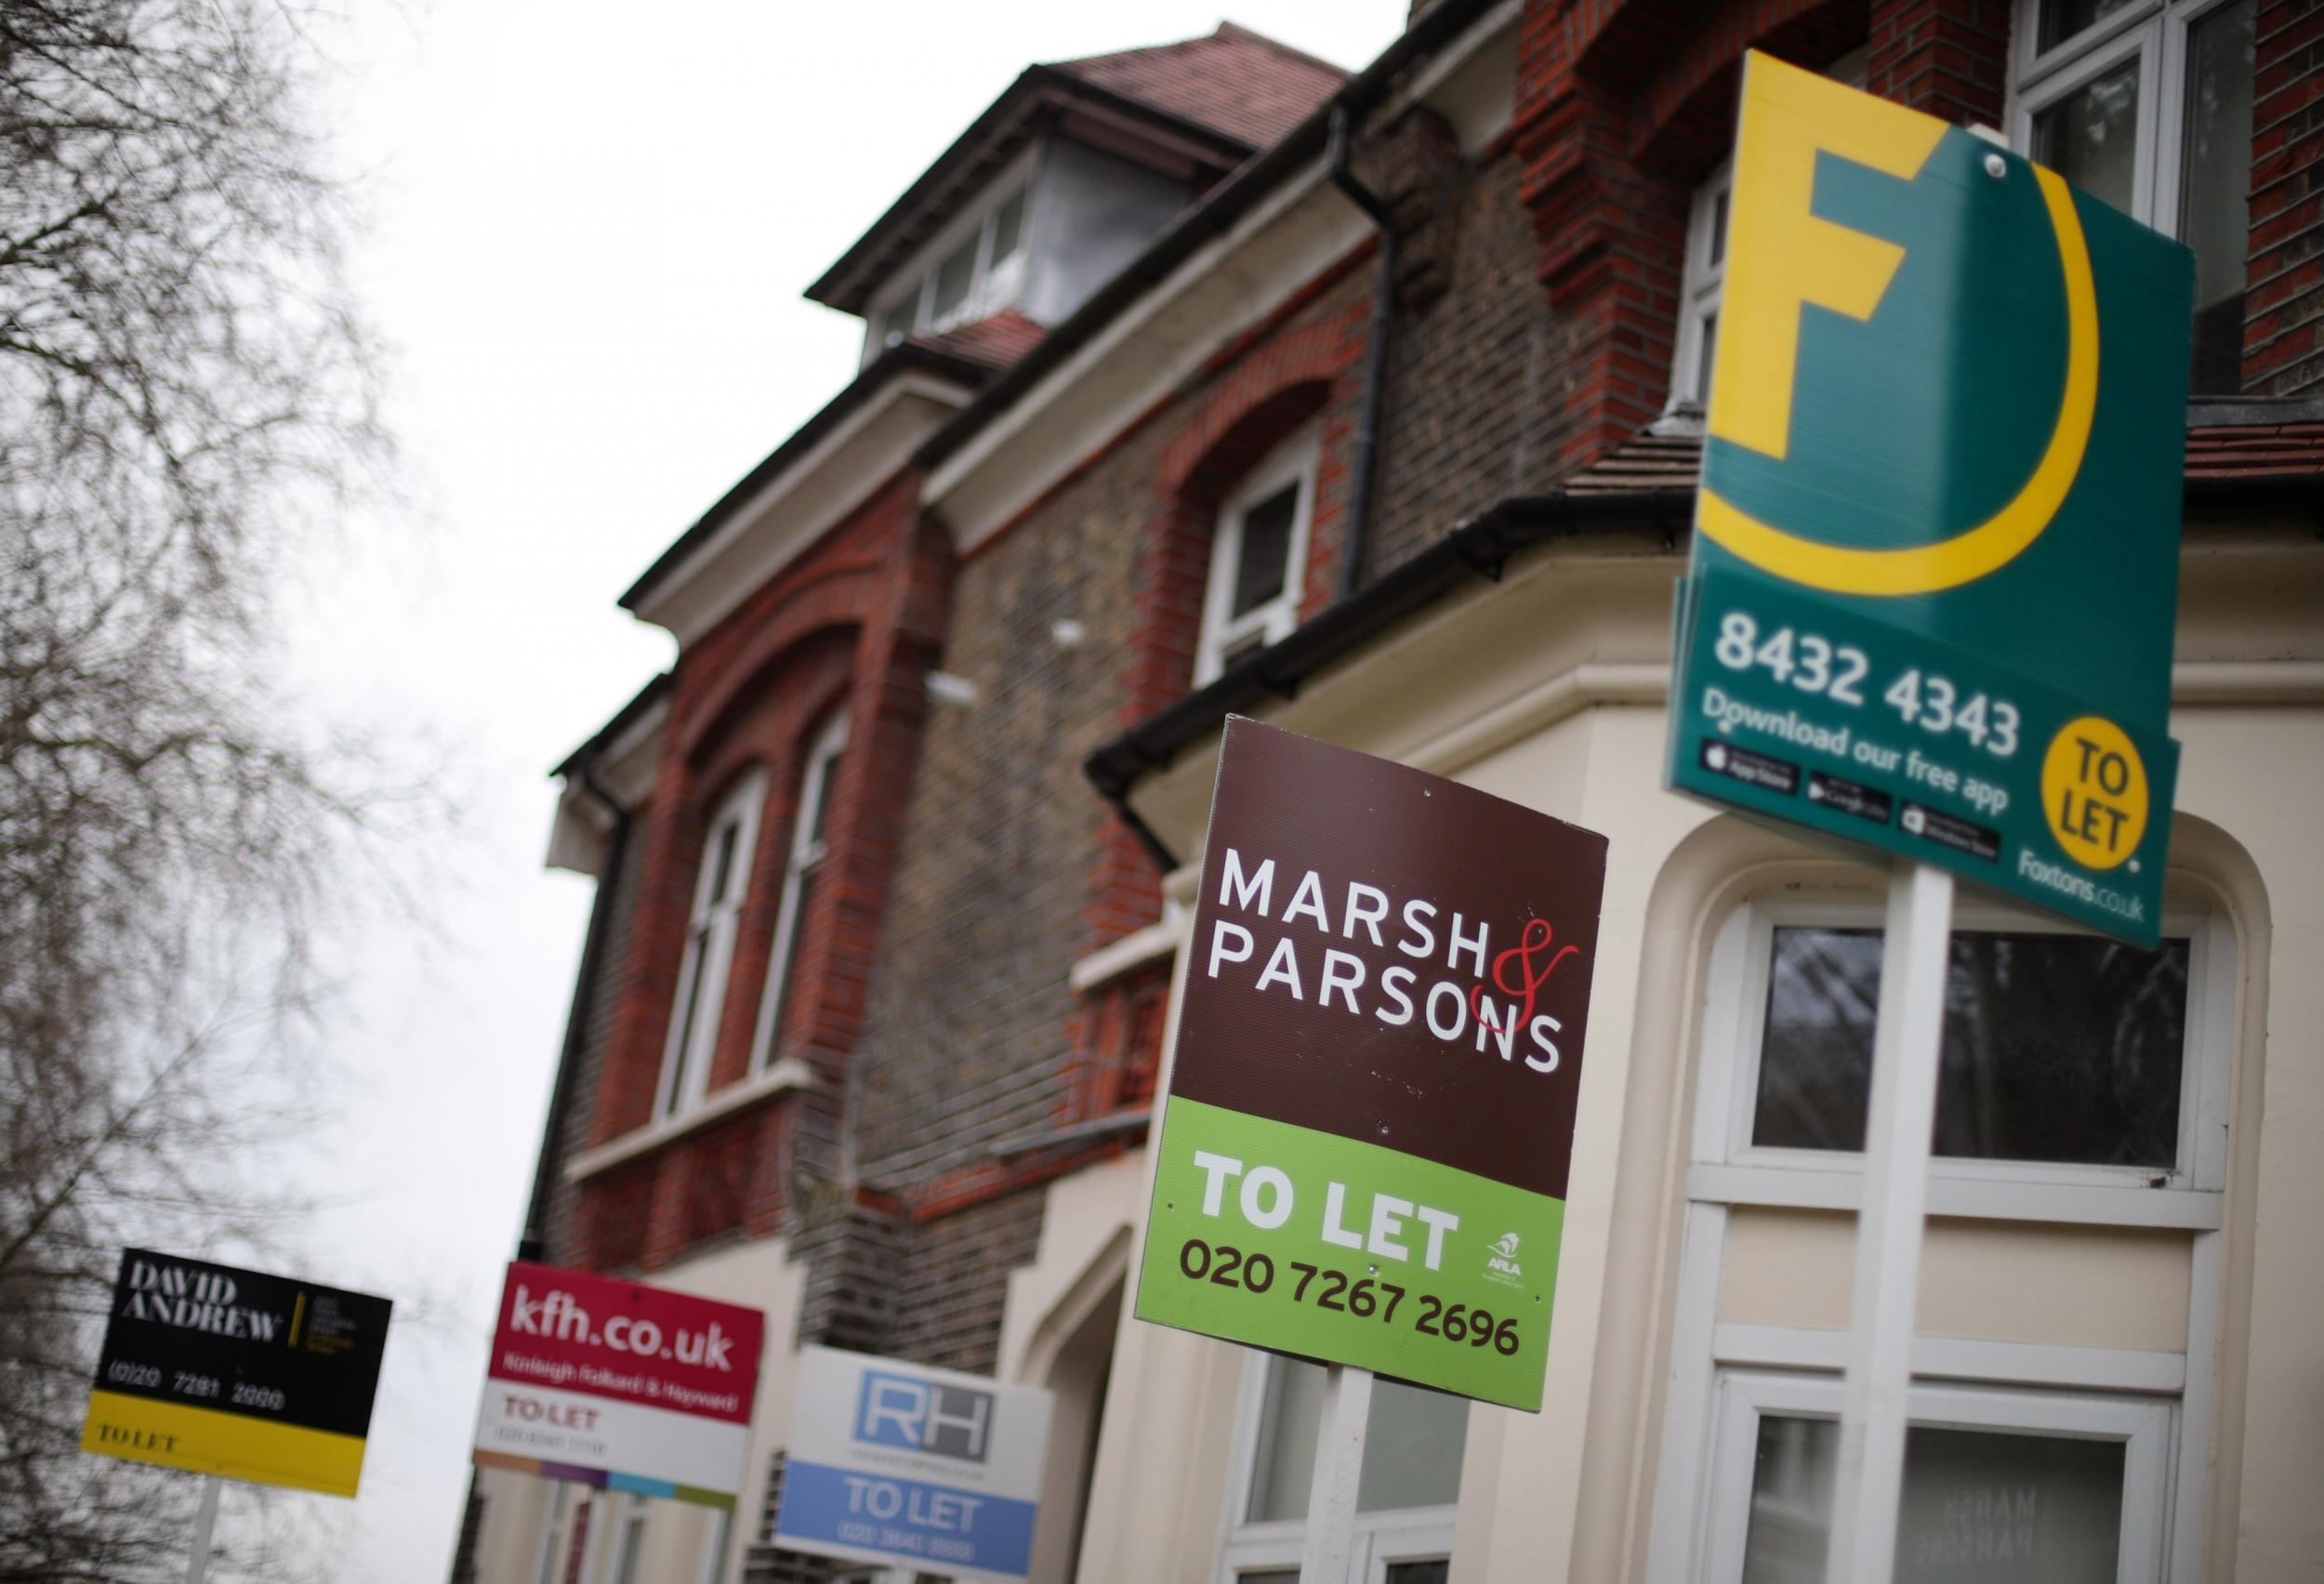 Families on housing benefit unable to afford 94% of rental homes, research finds